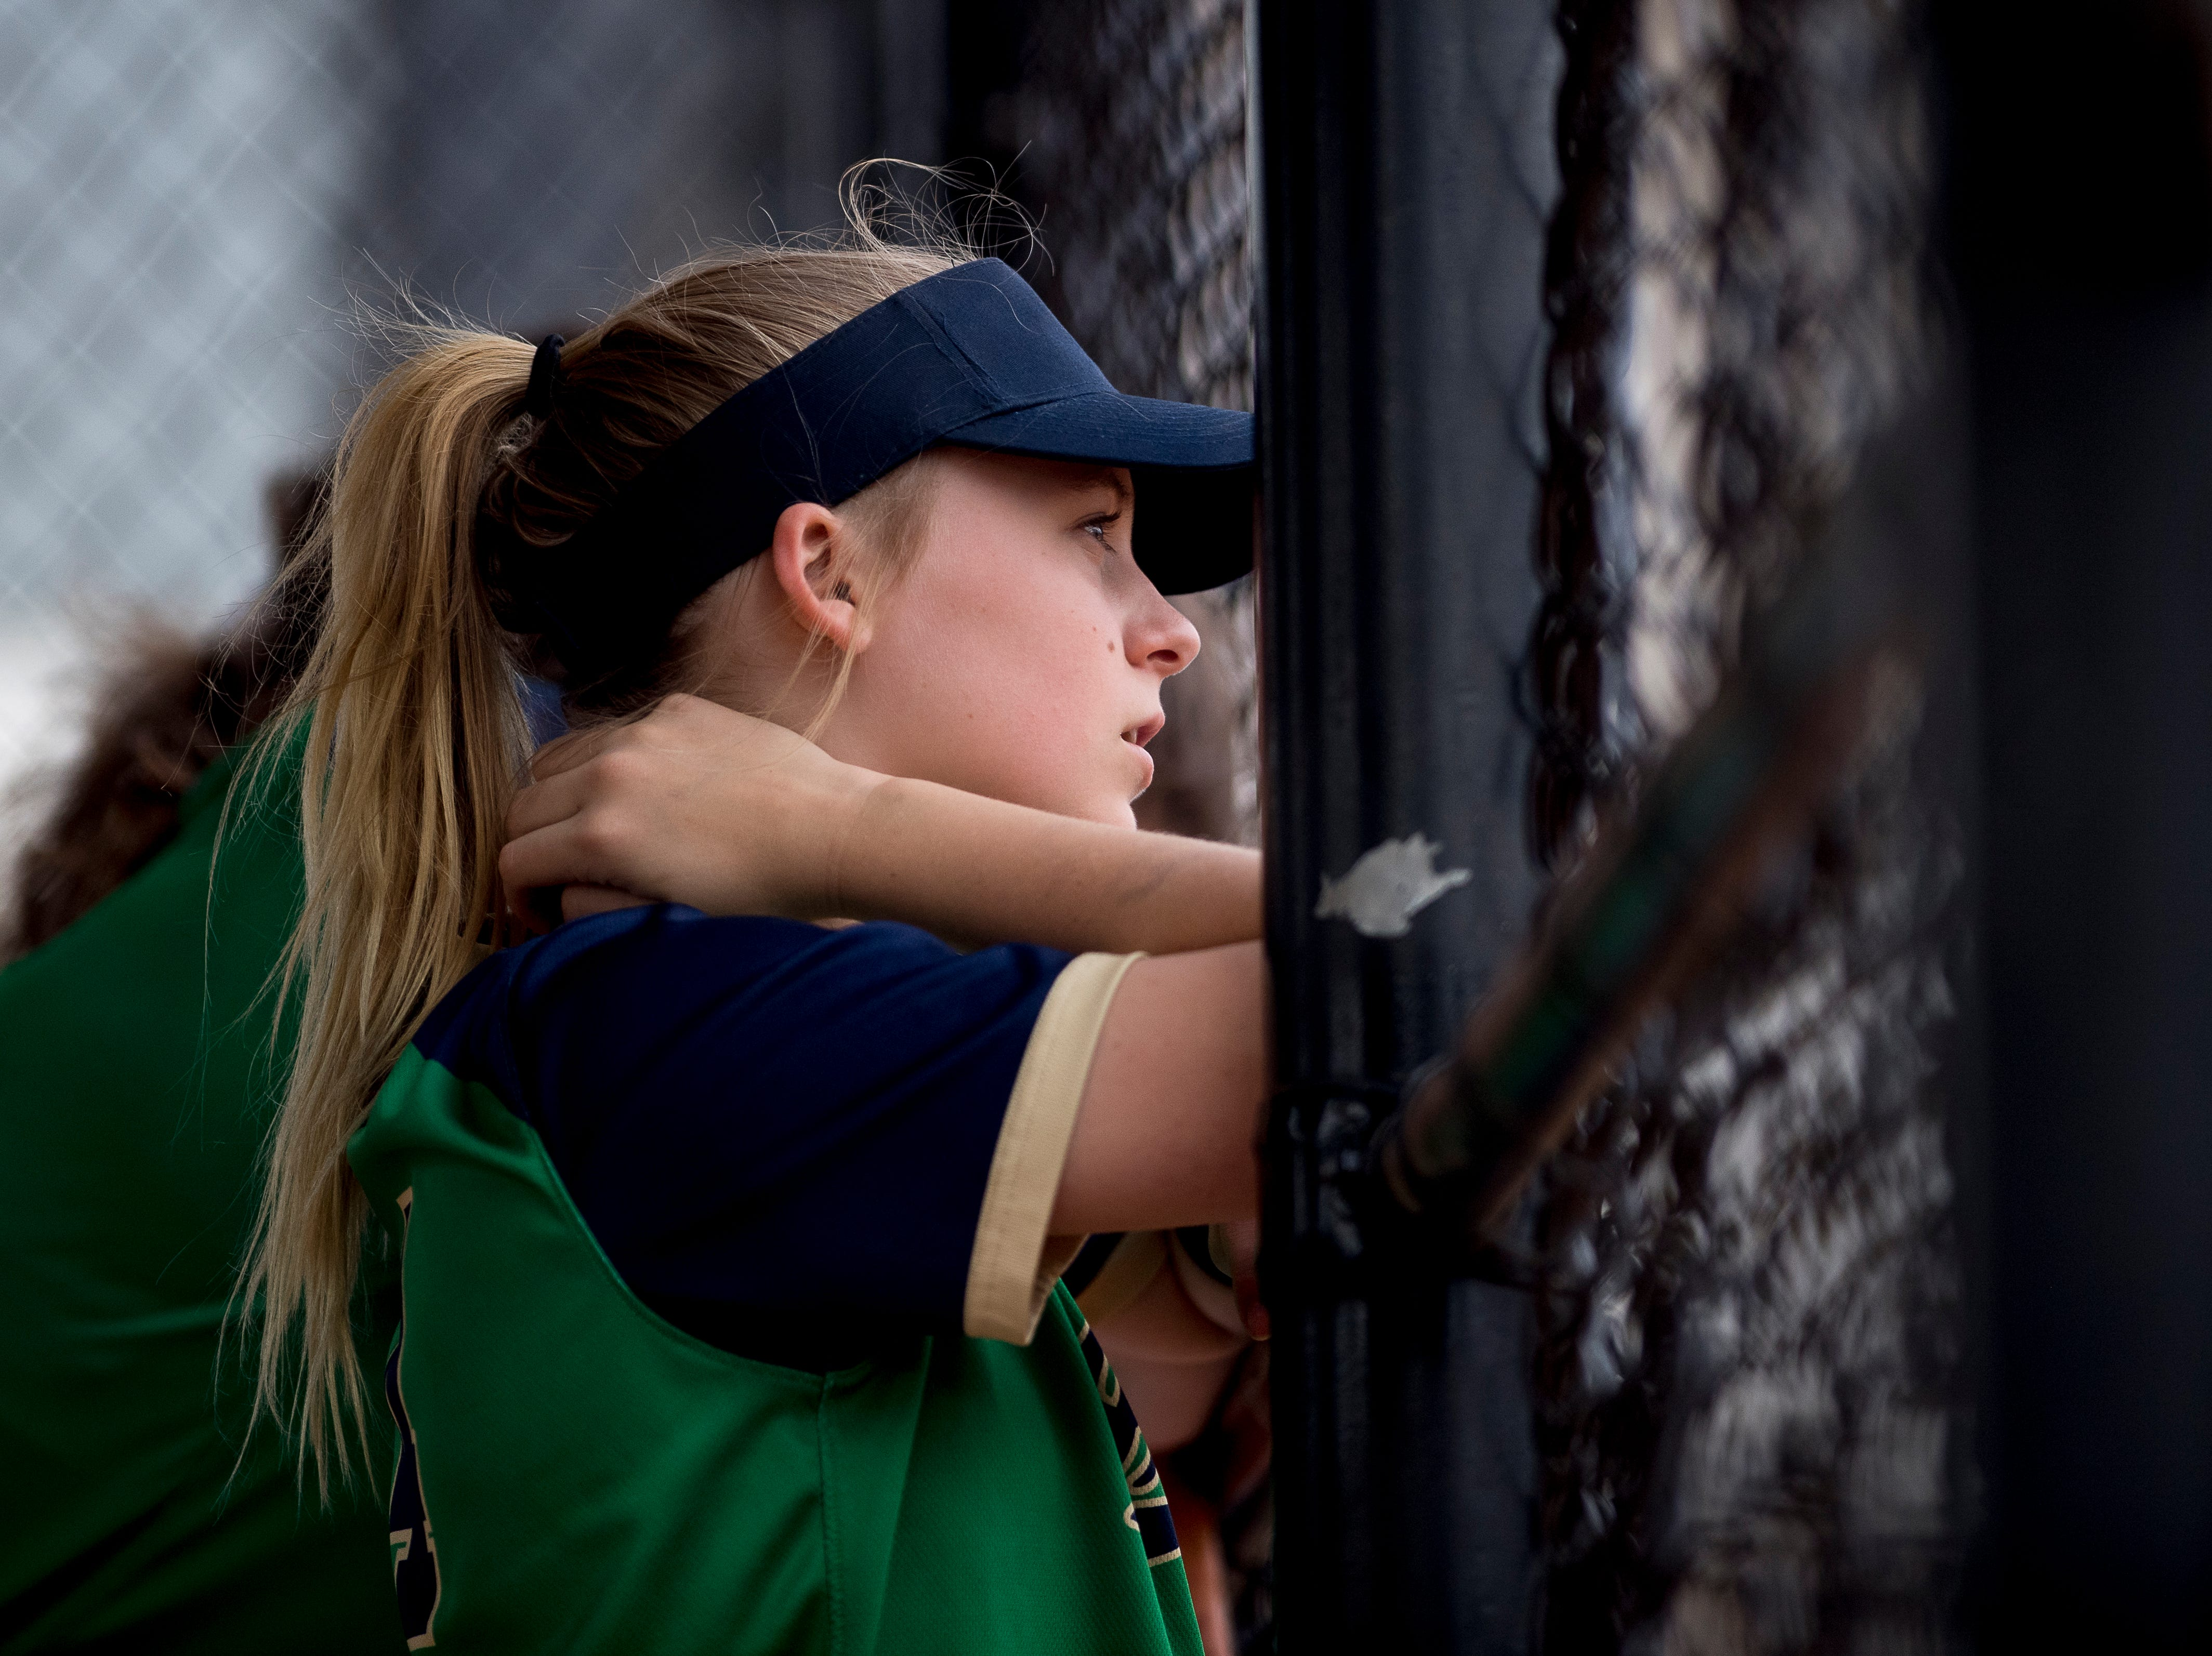 A Catholic player watches the game from the dugout during a softball game between Catholic and Karns at Caswell Park in Knoxville, Tennessee on Friday, April 12, 2019.